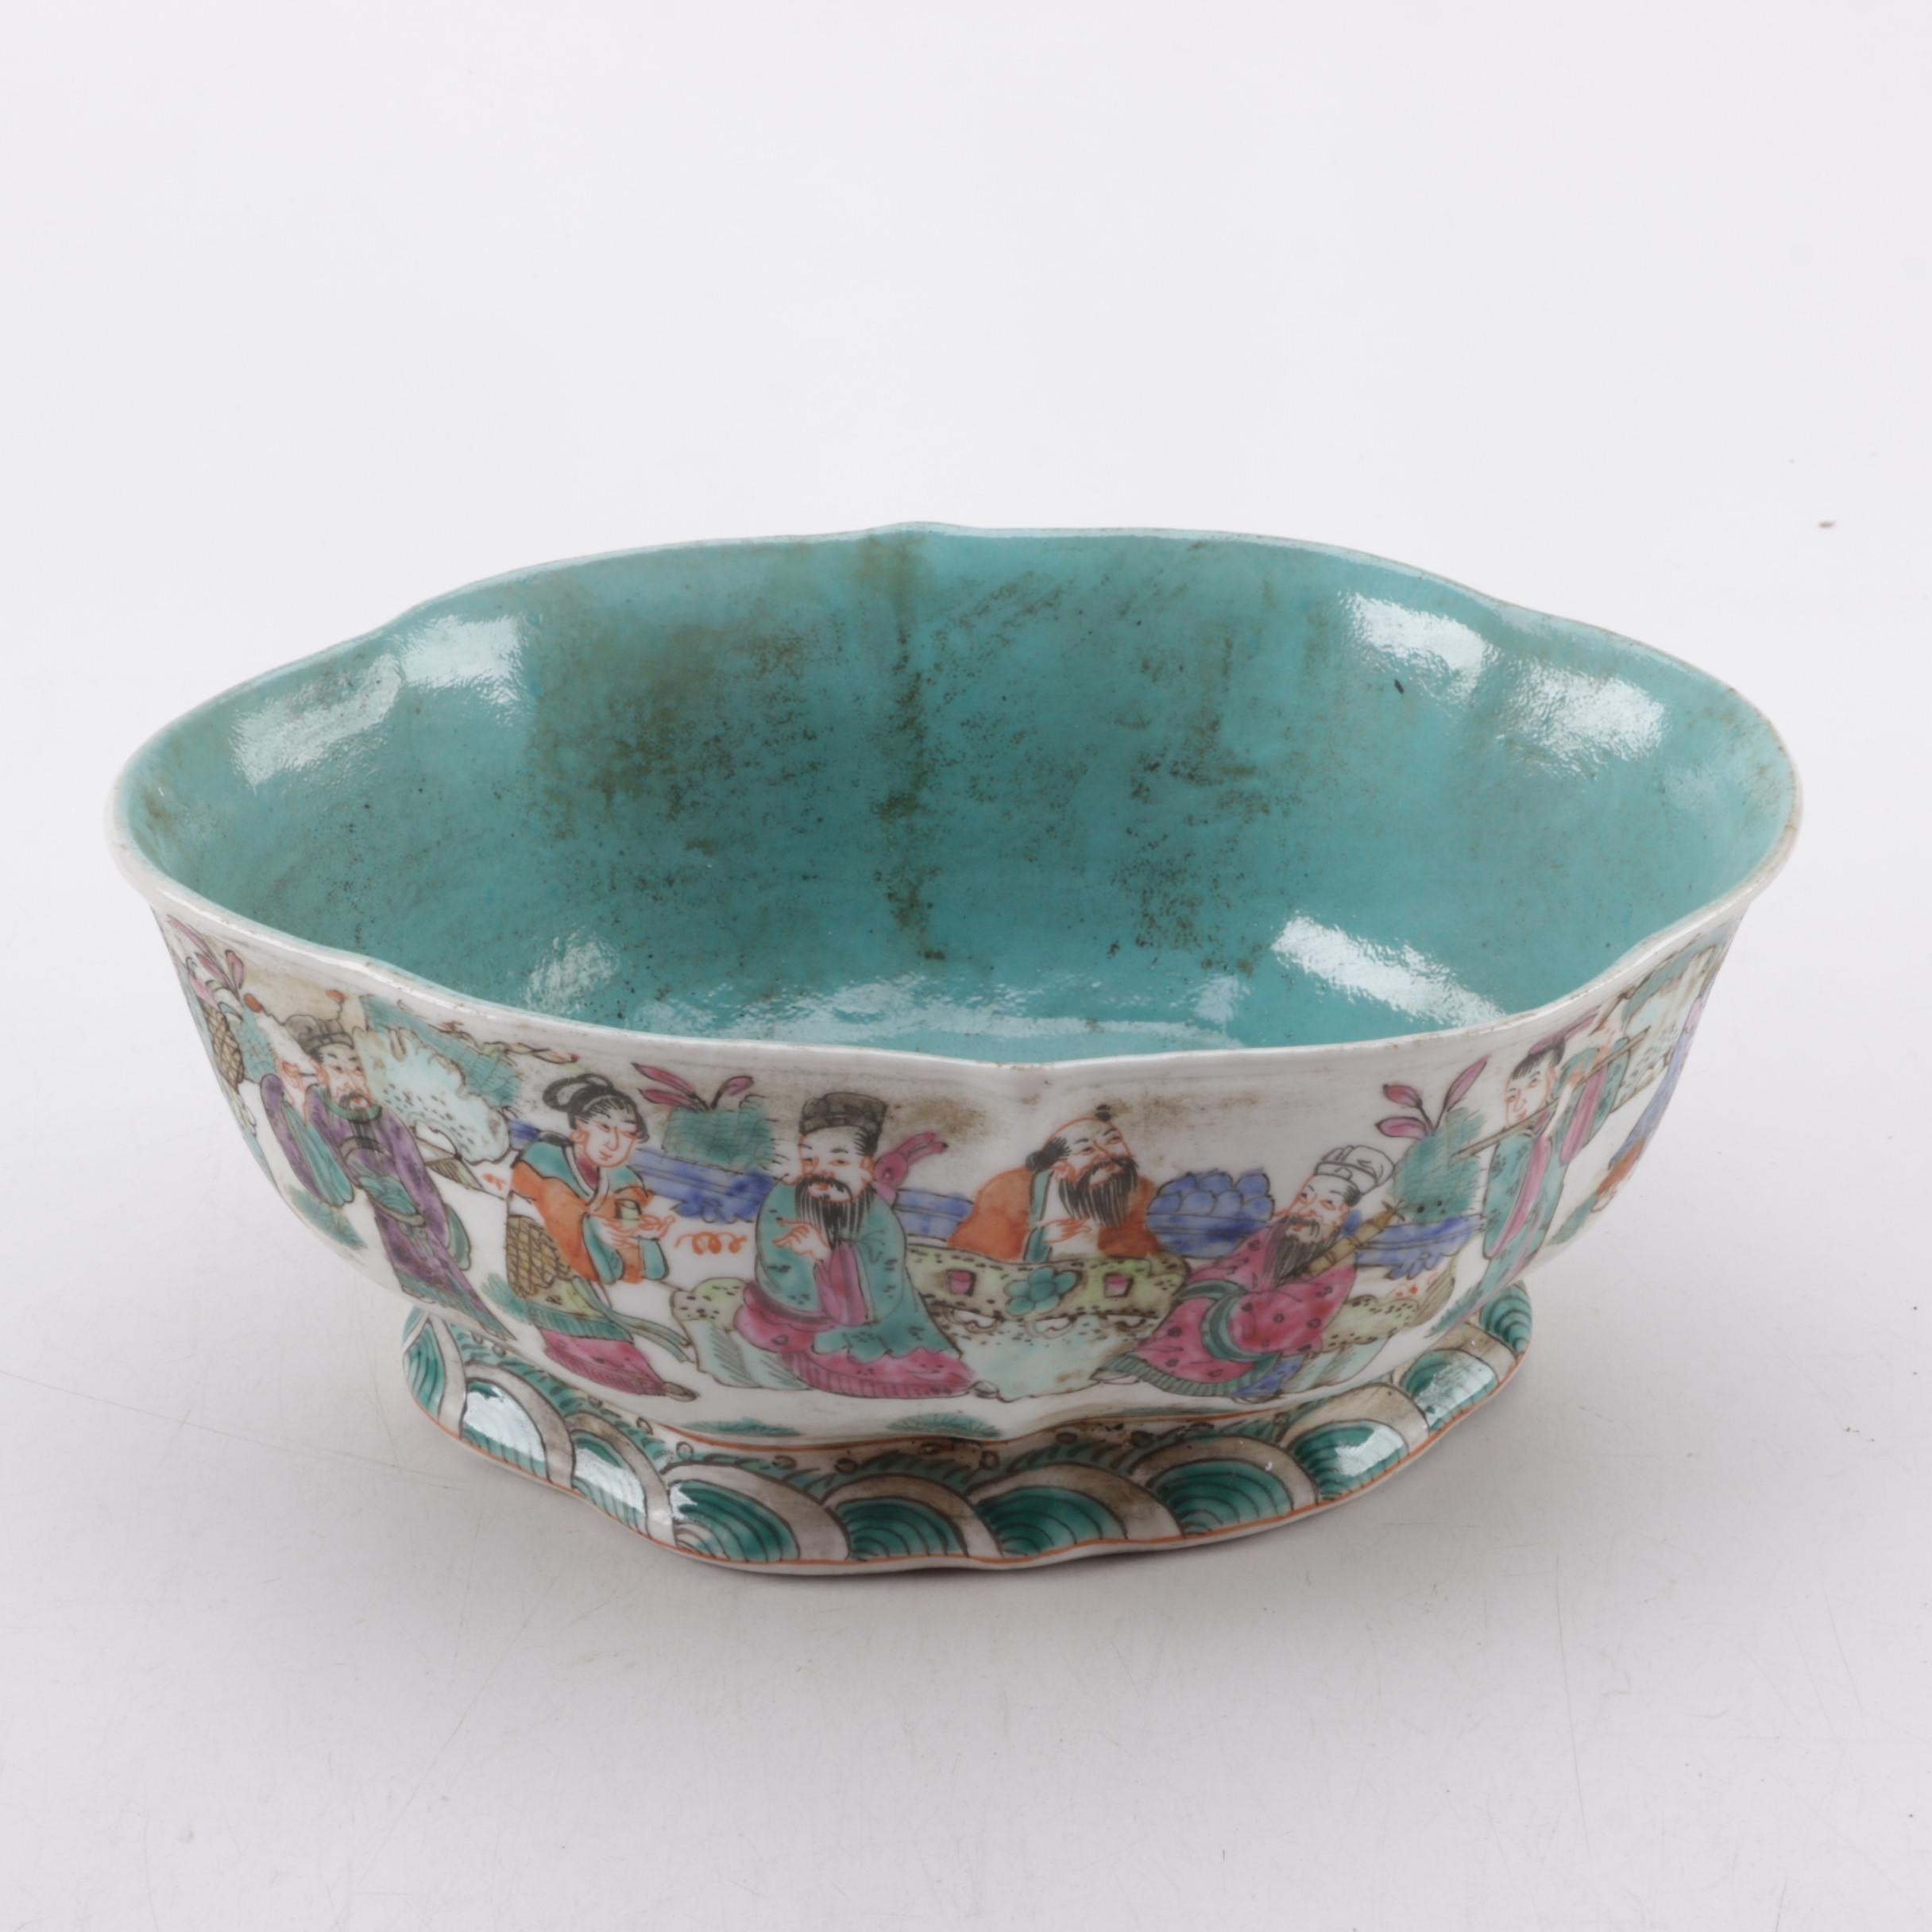 19th Century Chinese Lotus Shaped Hand Decorated Porcelain Bowl